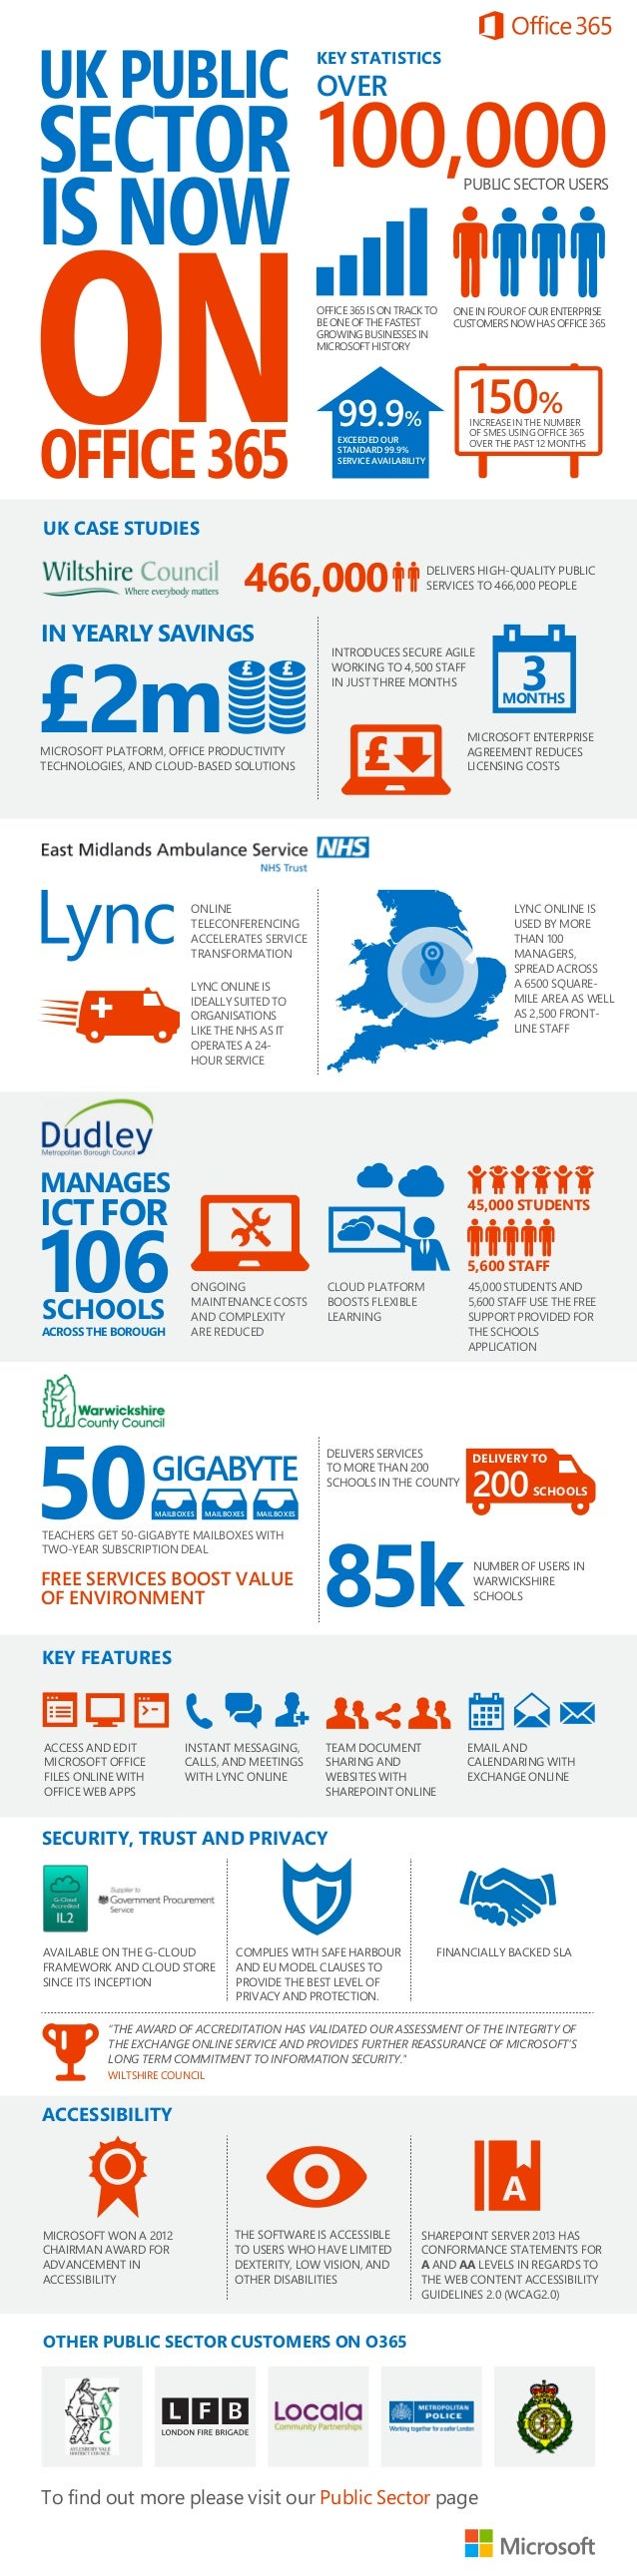 UK PUBLIC  KEY STATISTICS  OVER  SECTOR 100,000 IS NOW  ON  PUBLIC SECTOR USERS  OFFICE 365 IS ON TRACK TO BE ONE OF THE F...